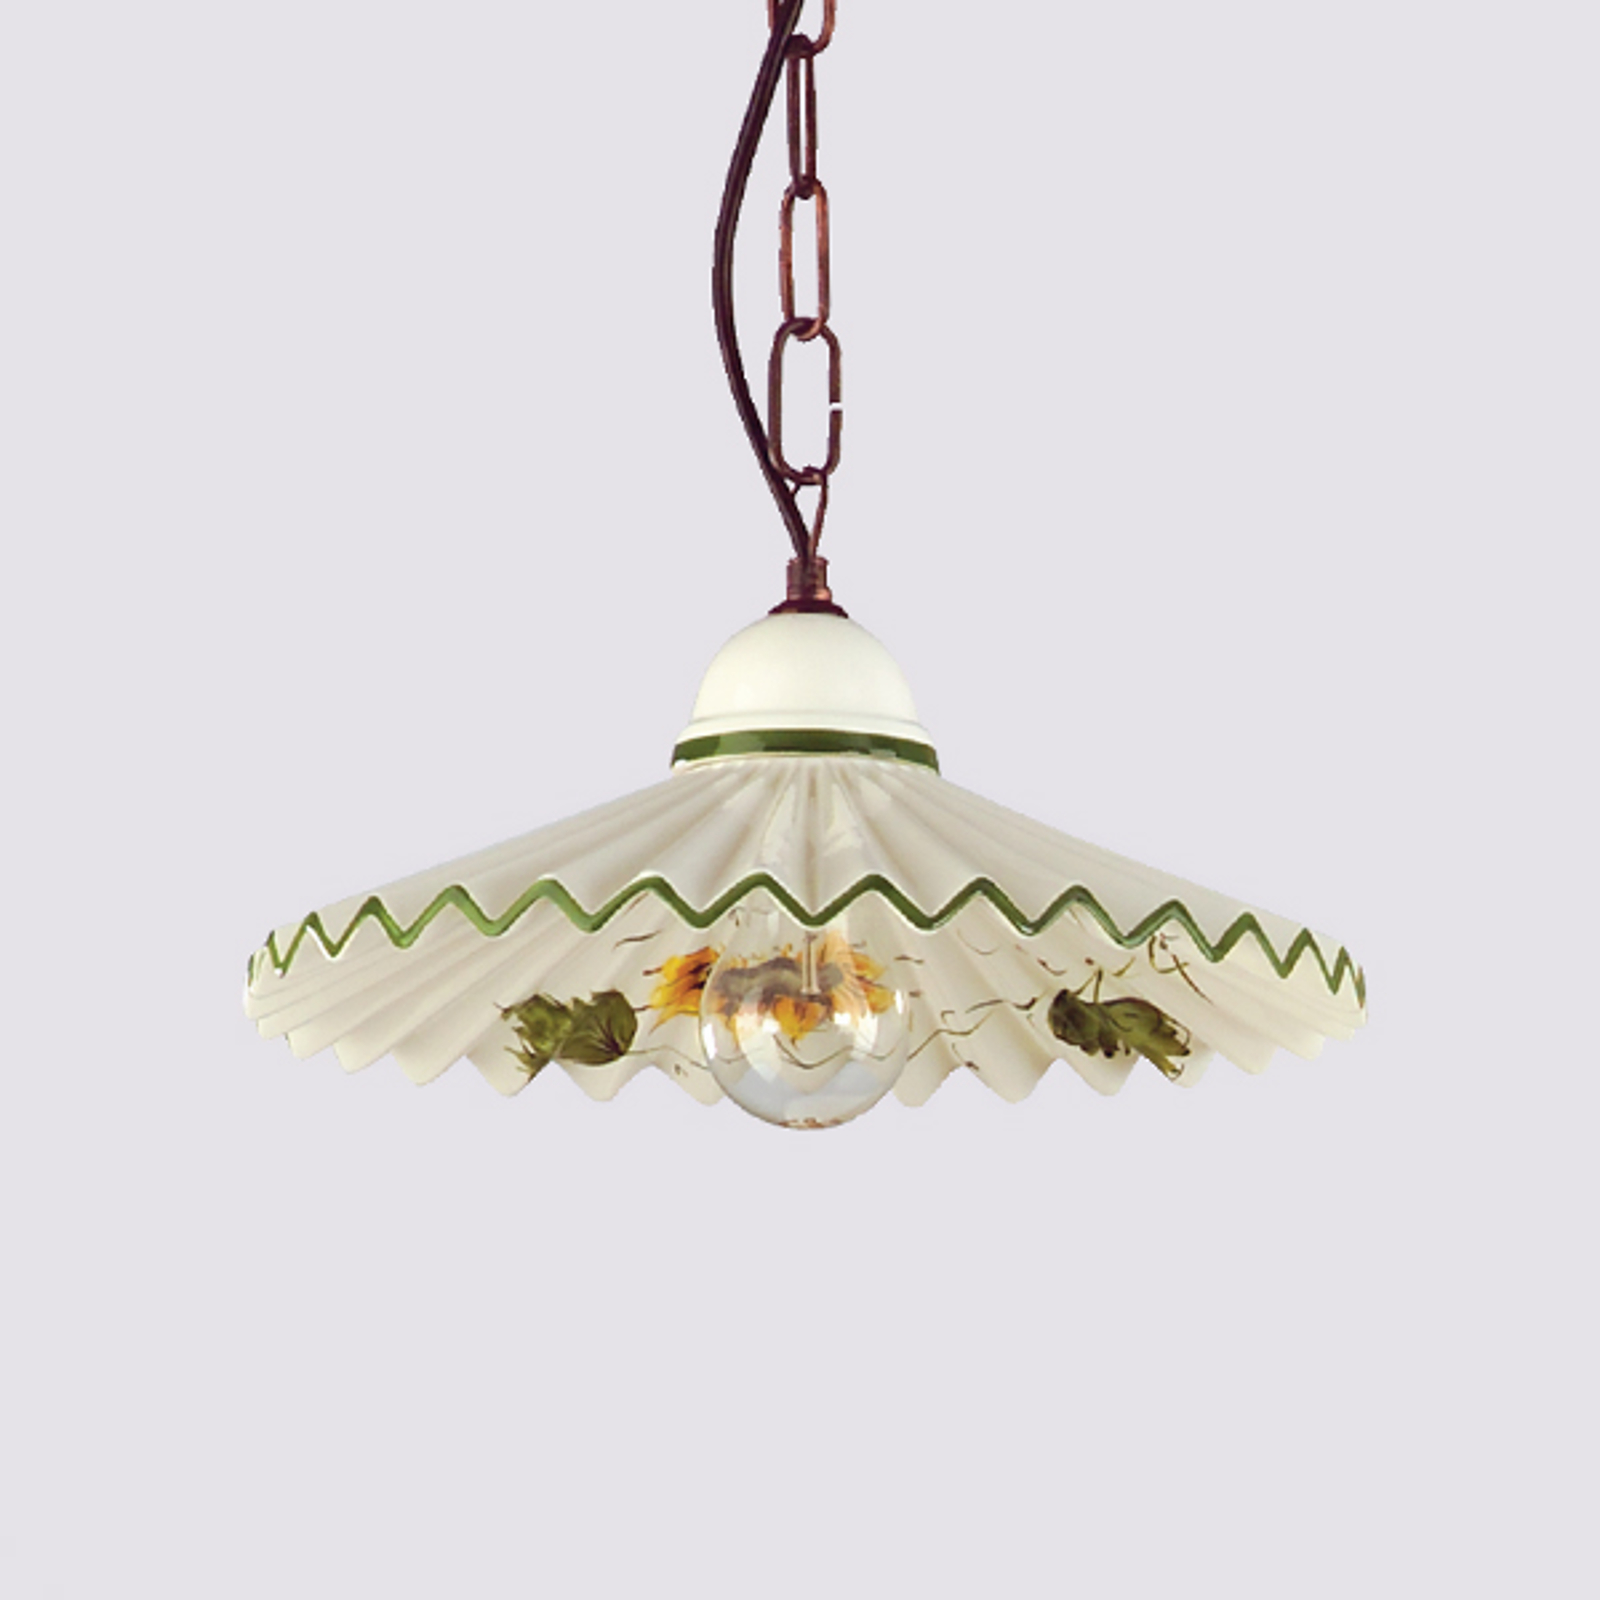 Rusticana hanging light with chain_3046108_1